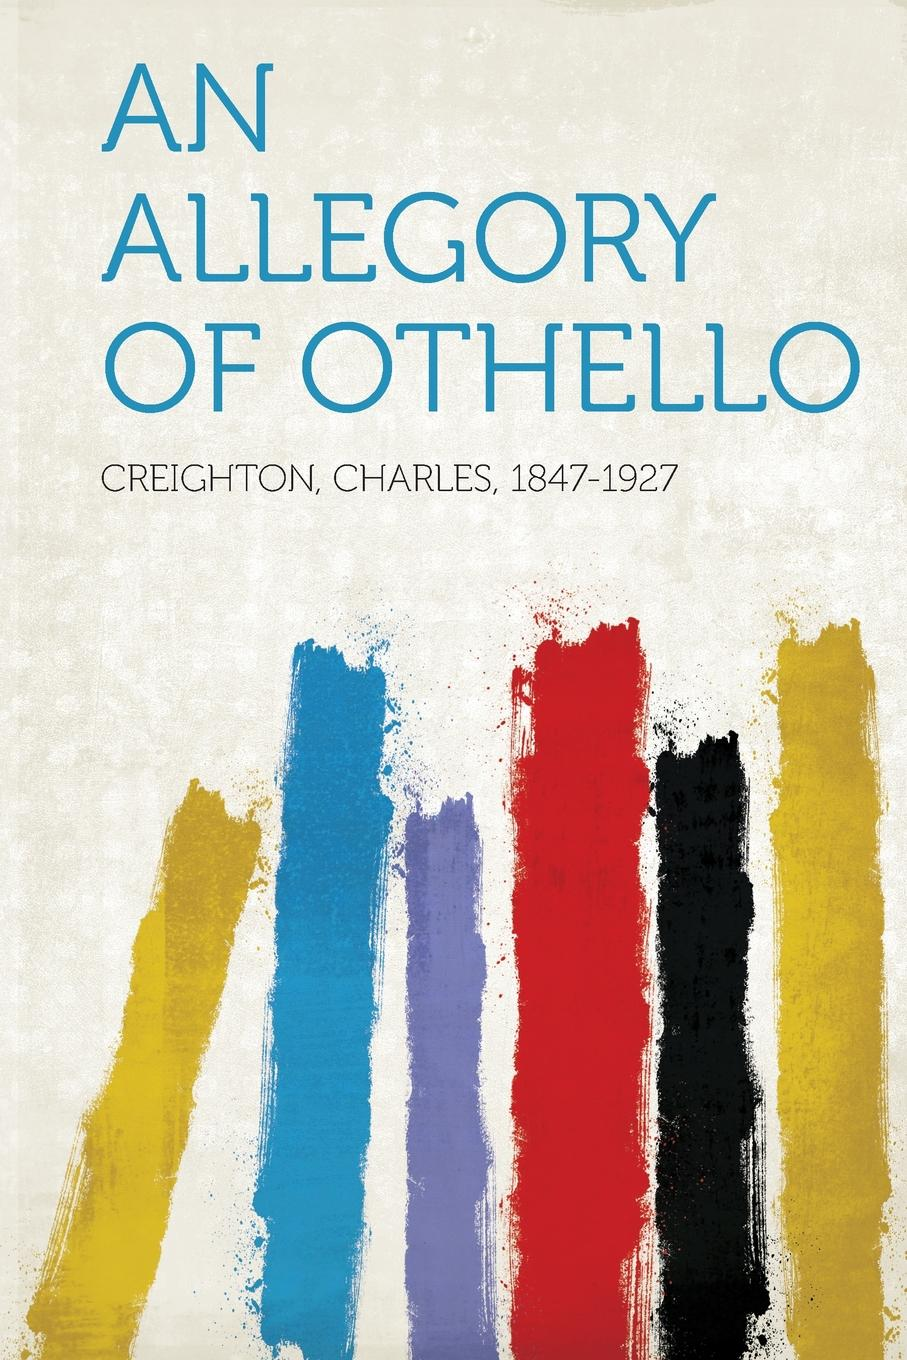 An Allegory of Othello